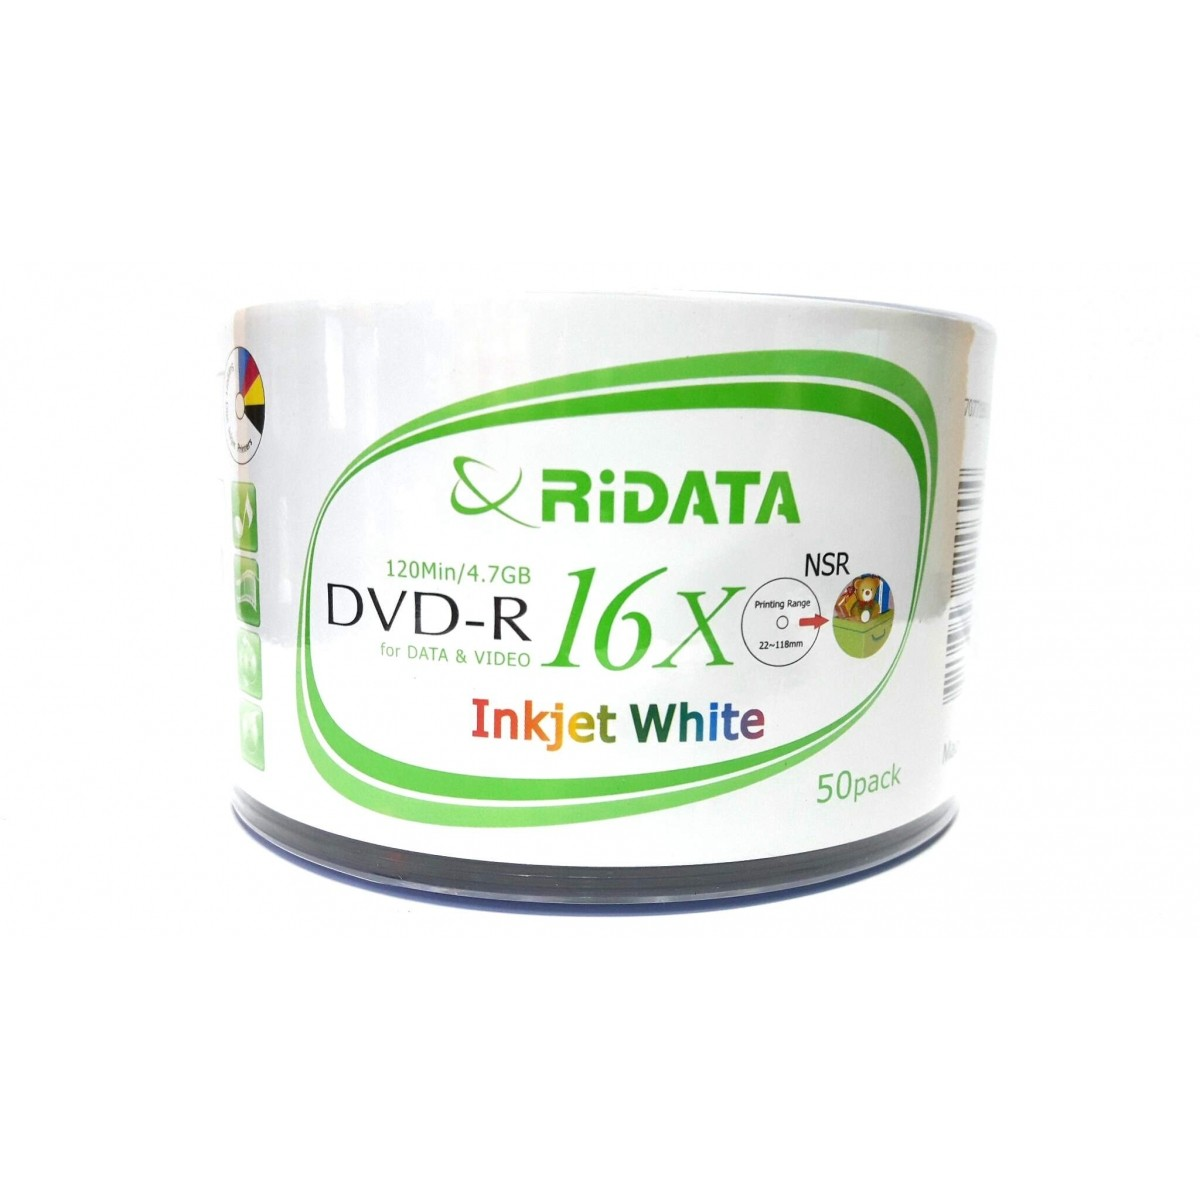 50 Mídia Virgem Dvd-r Ridata Printable 4.7gb 120min